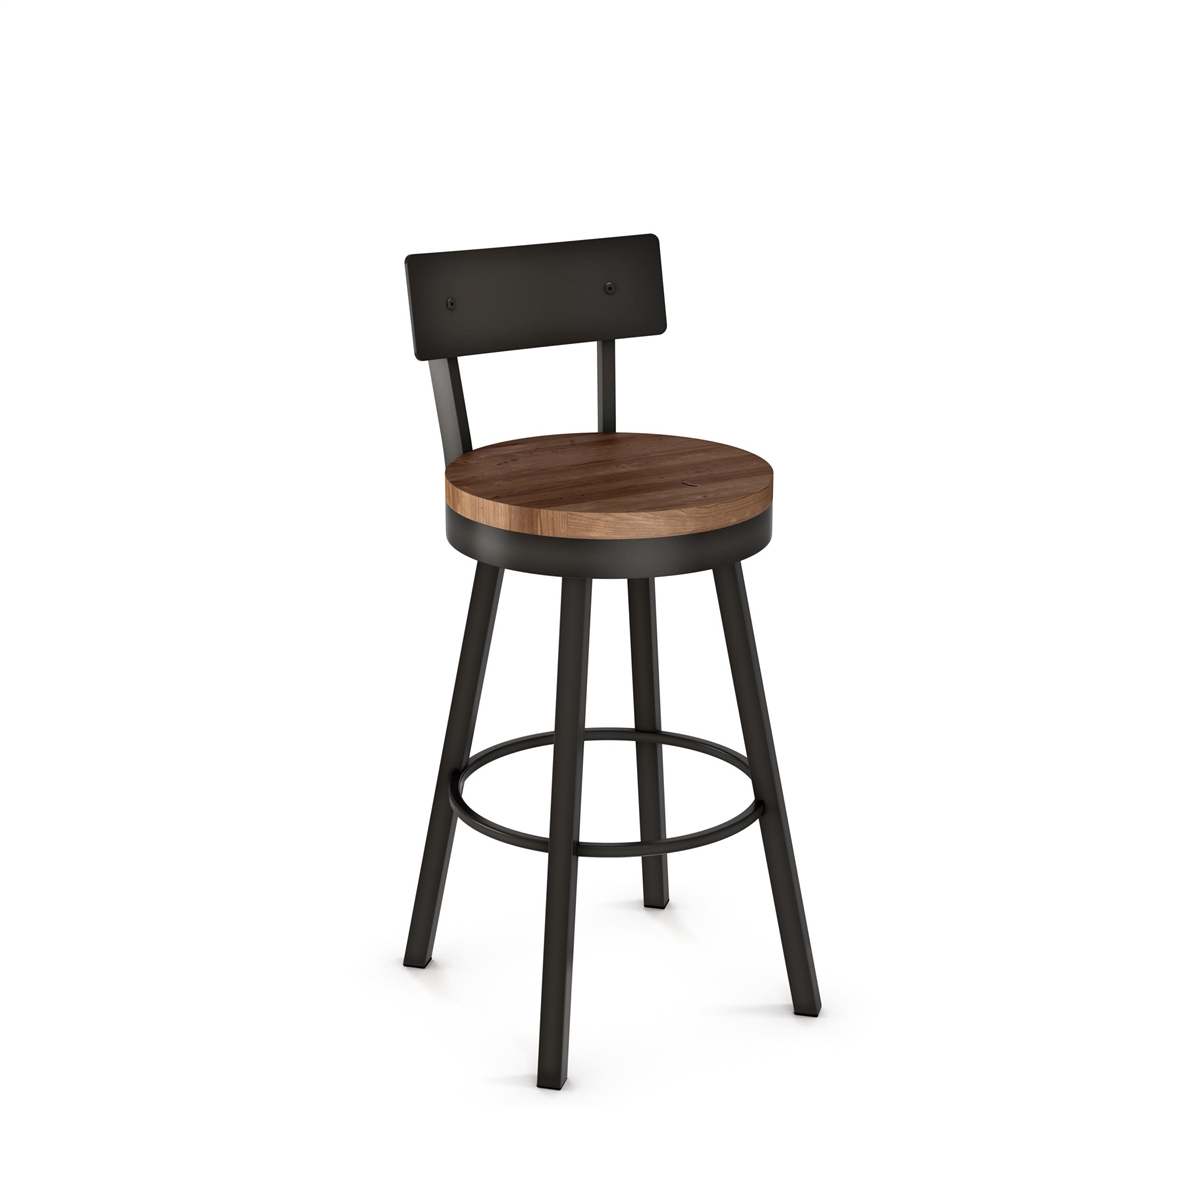 Awesome Lauren Swivel Stool Upholstered Seat And Metal Backrest Onthecornerstone Fun Painted Chair Ideas Images Onthecornerstoneorg